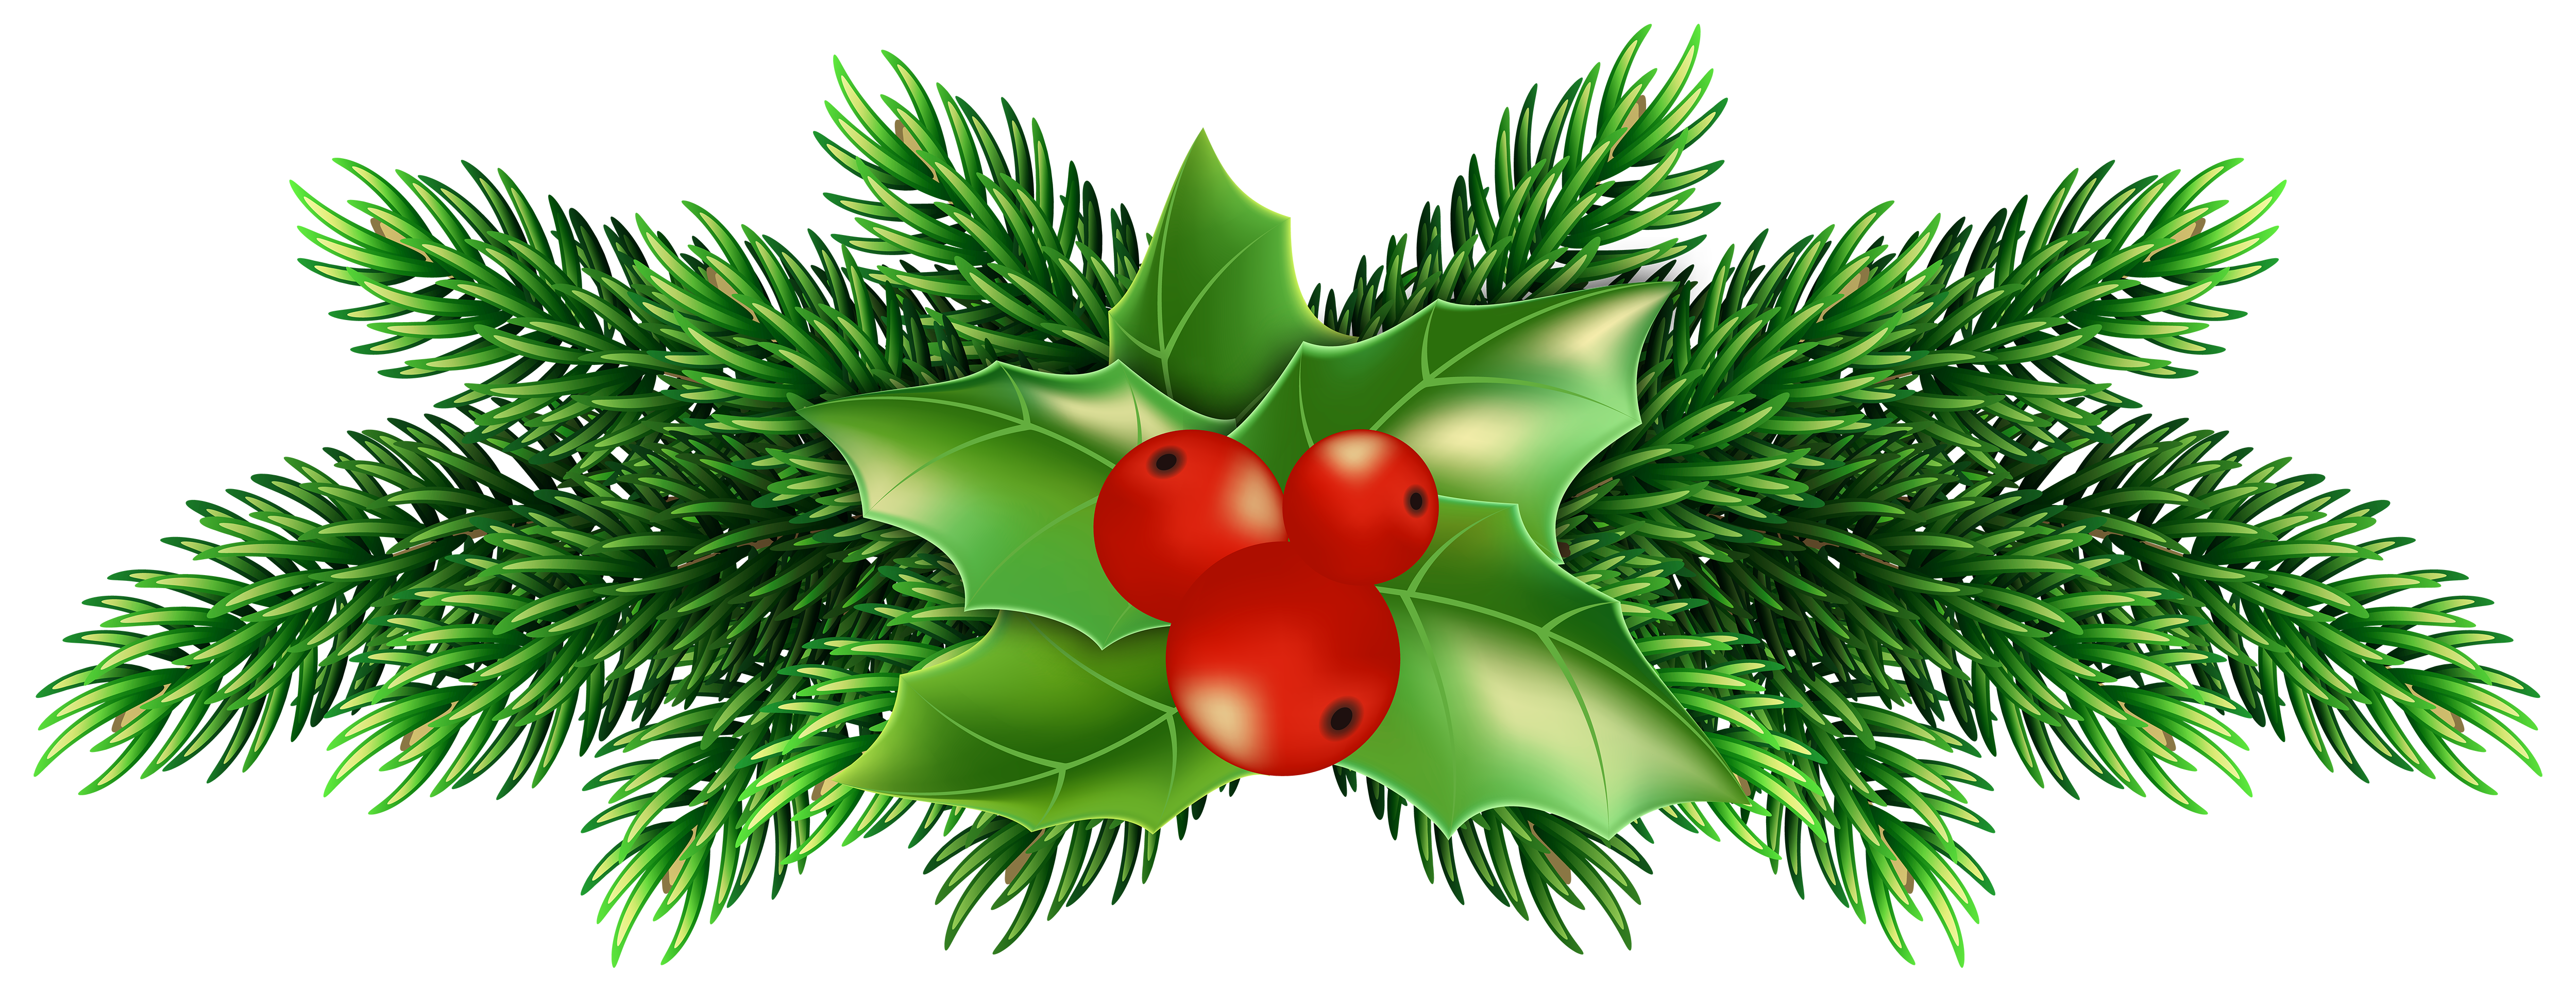 image library library Holly clip art net. Western christmas clipart